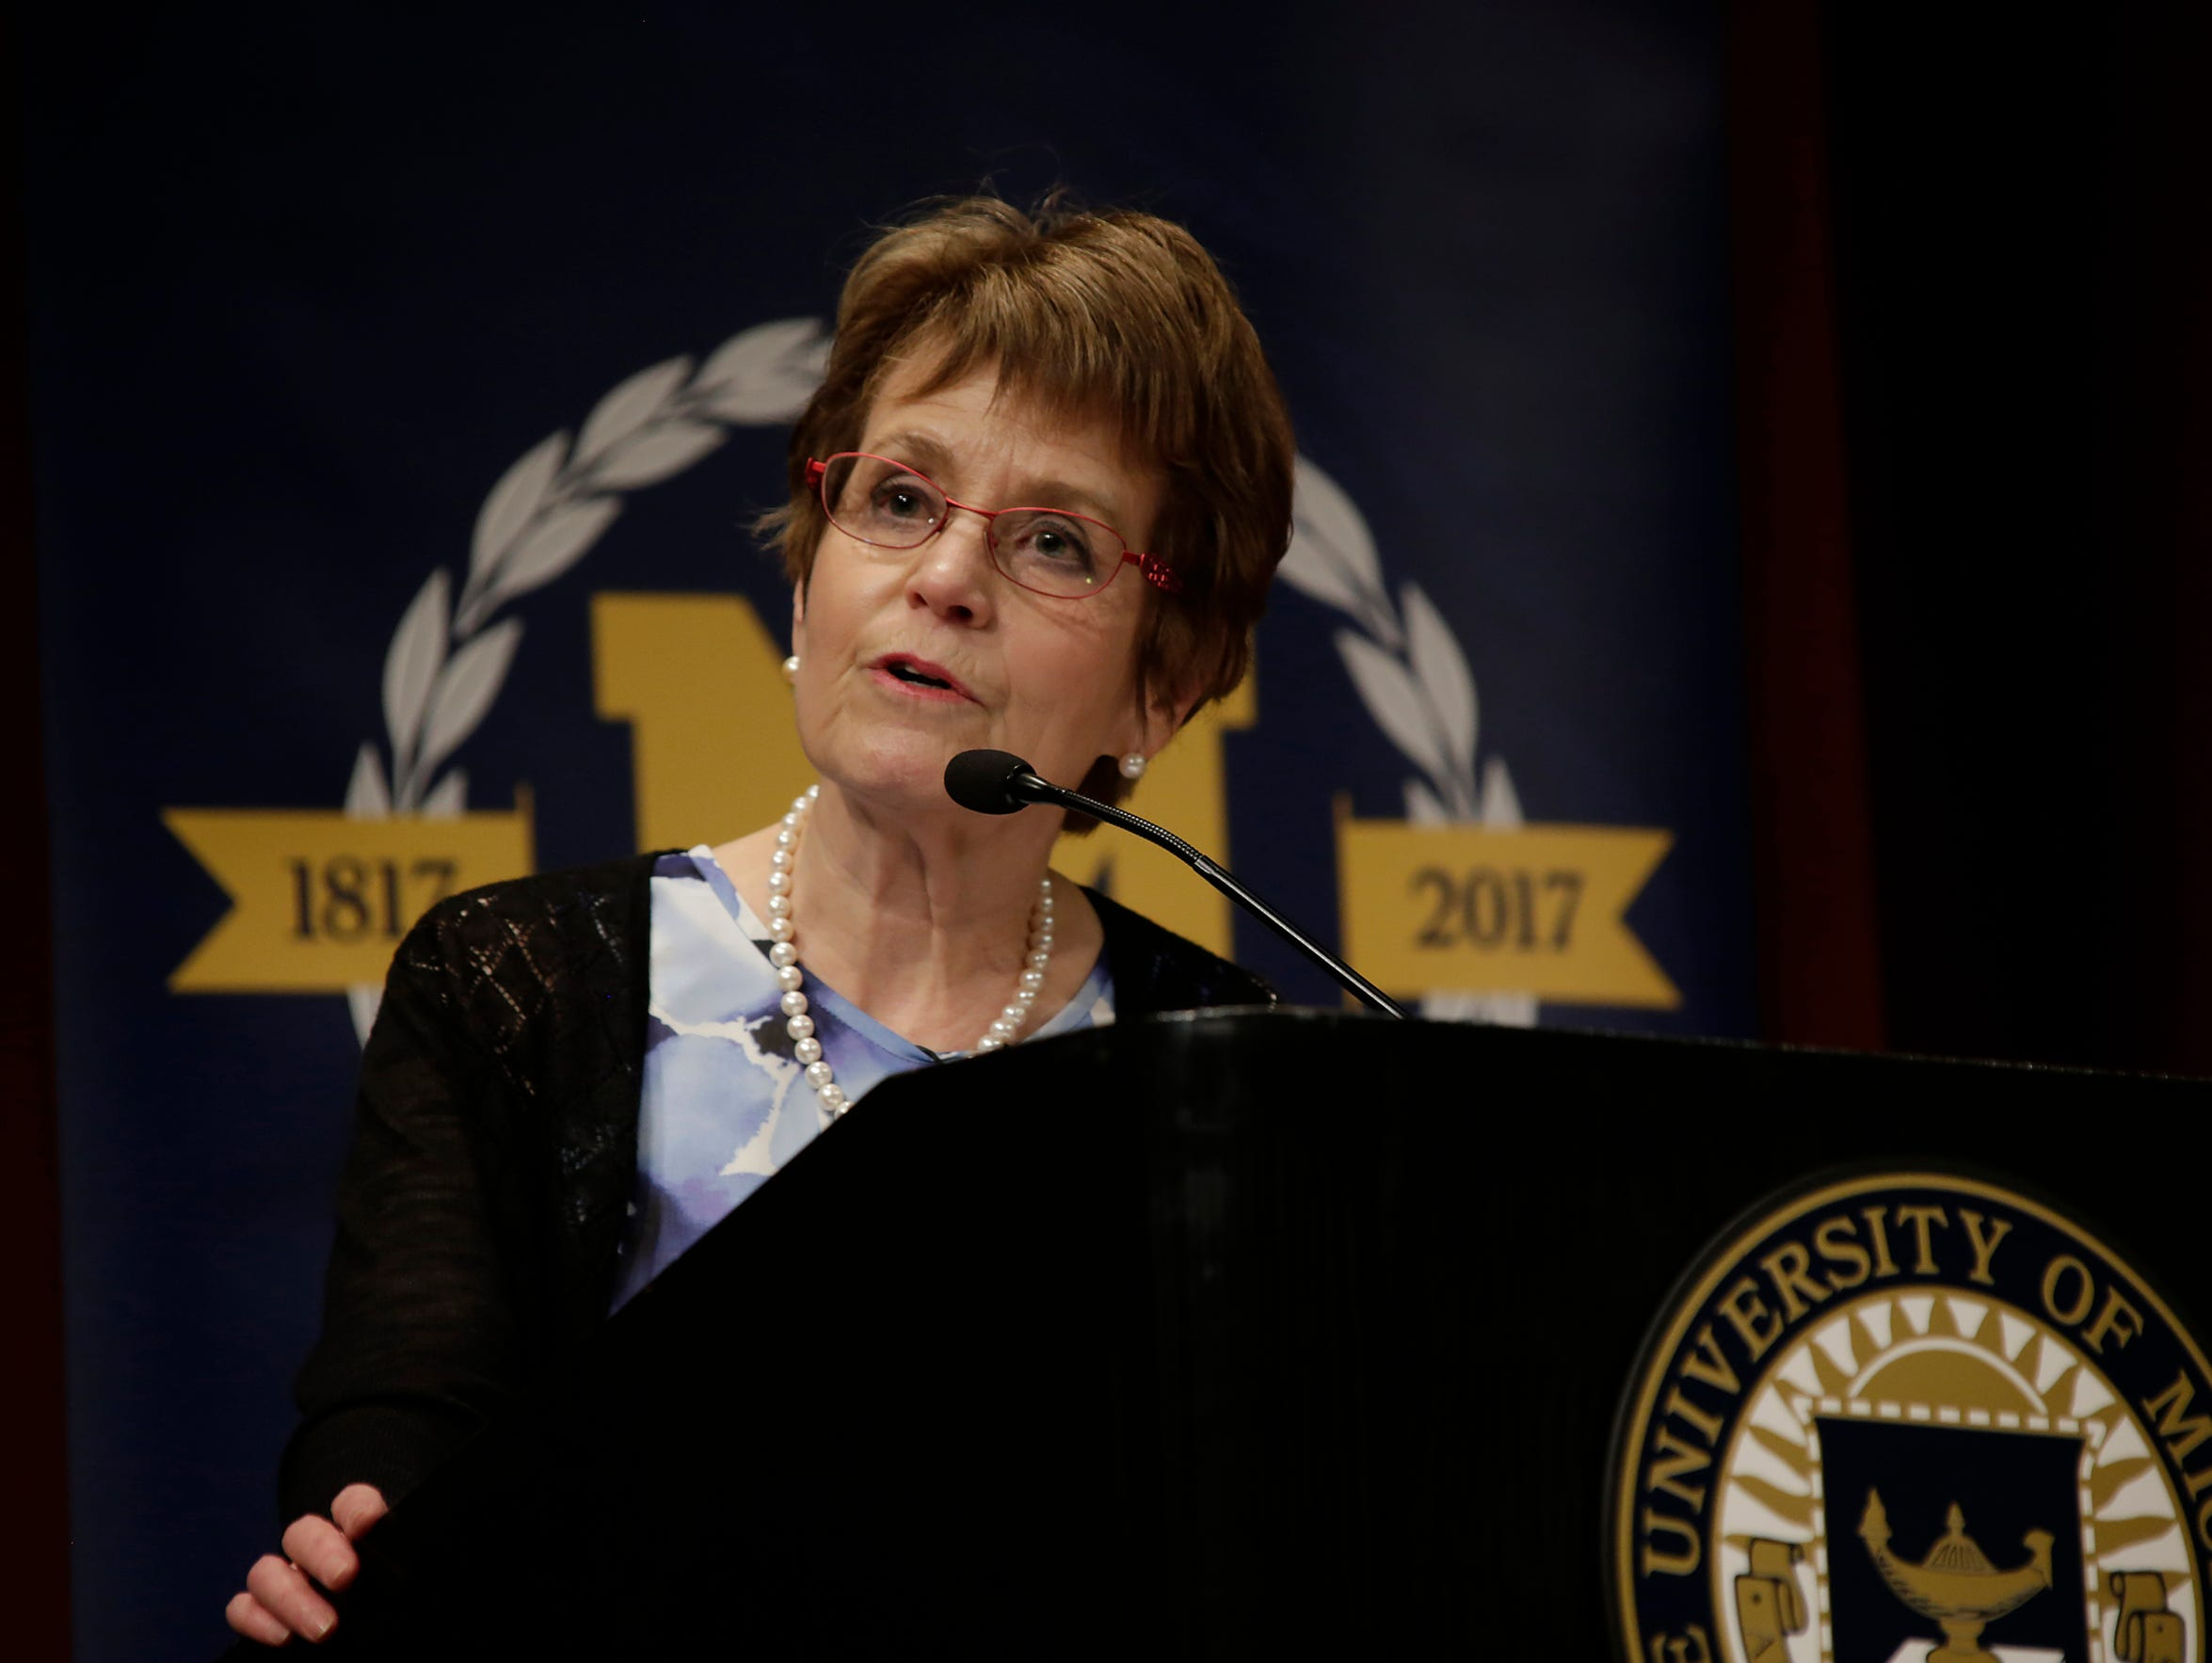 Former University of Michigan President Mary Sue Coleman speaks during a program at Rackham Auditorium in Ann Arbor on Thursday,  April 6, 2017.